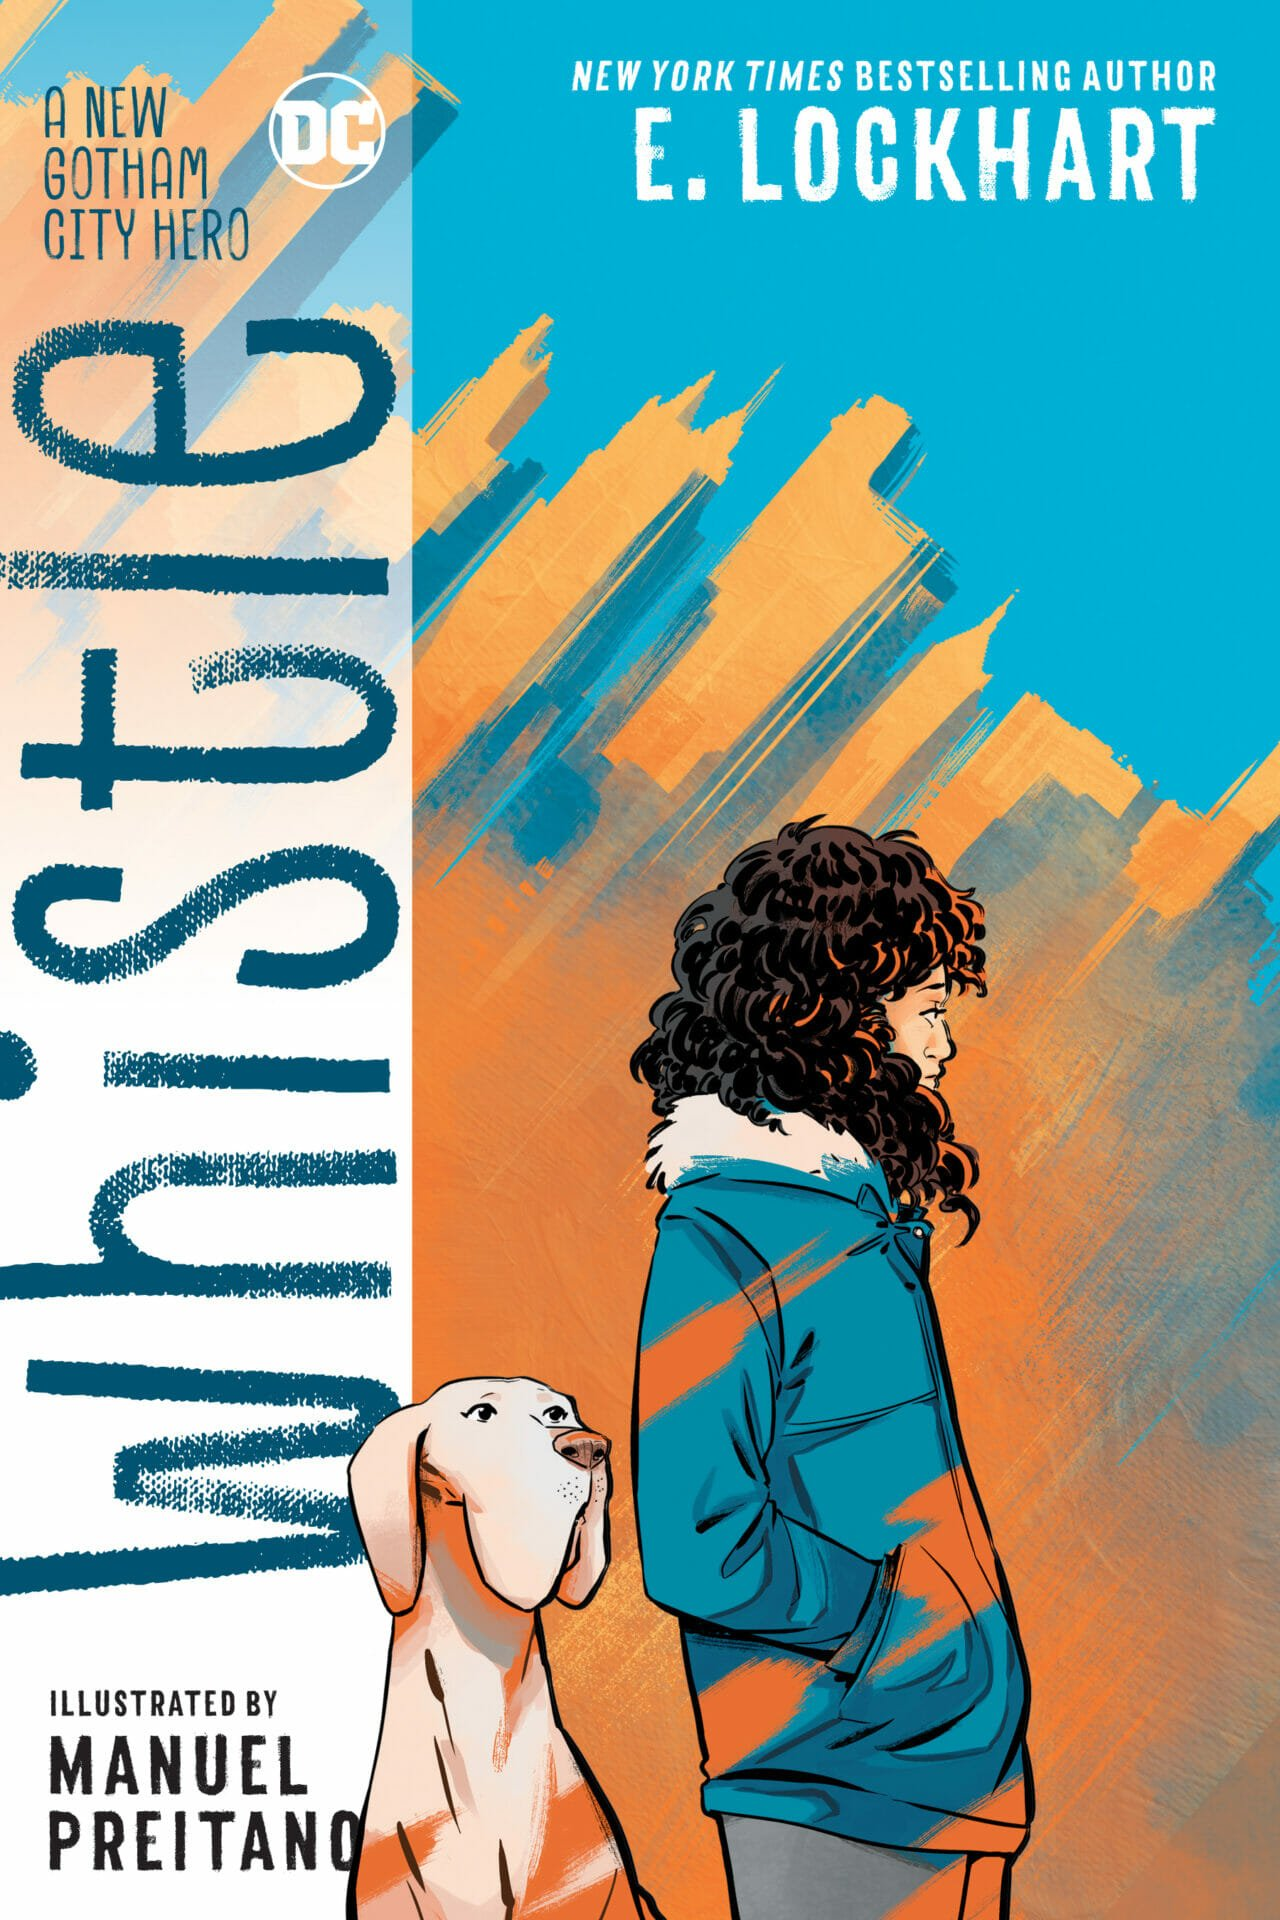 Whistle: A New Gotham City Hero Review 4